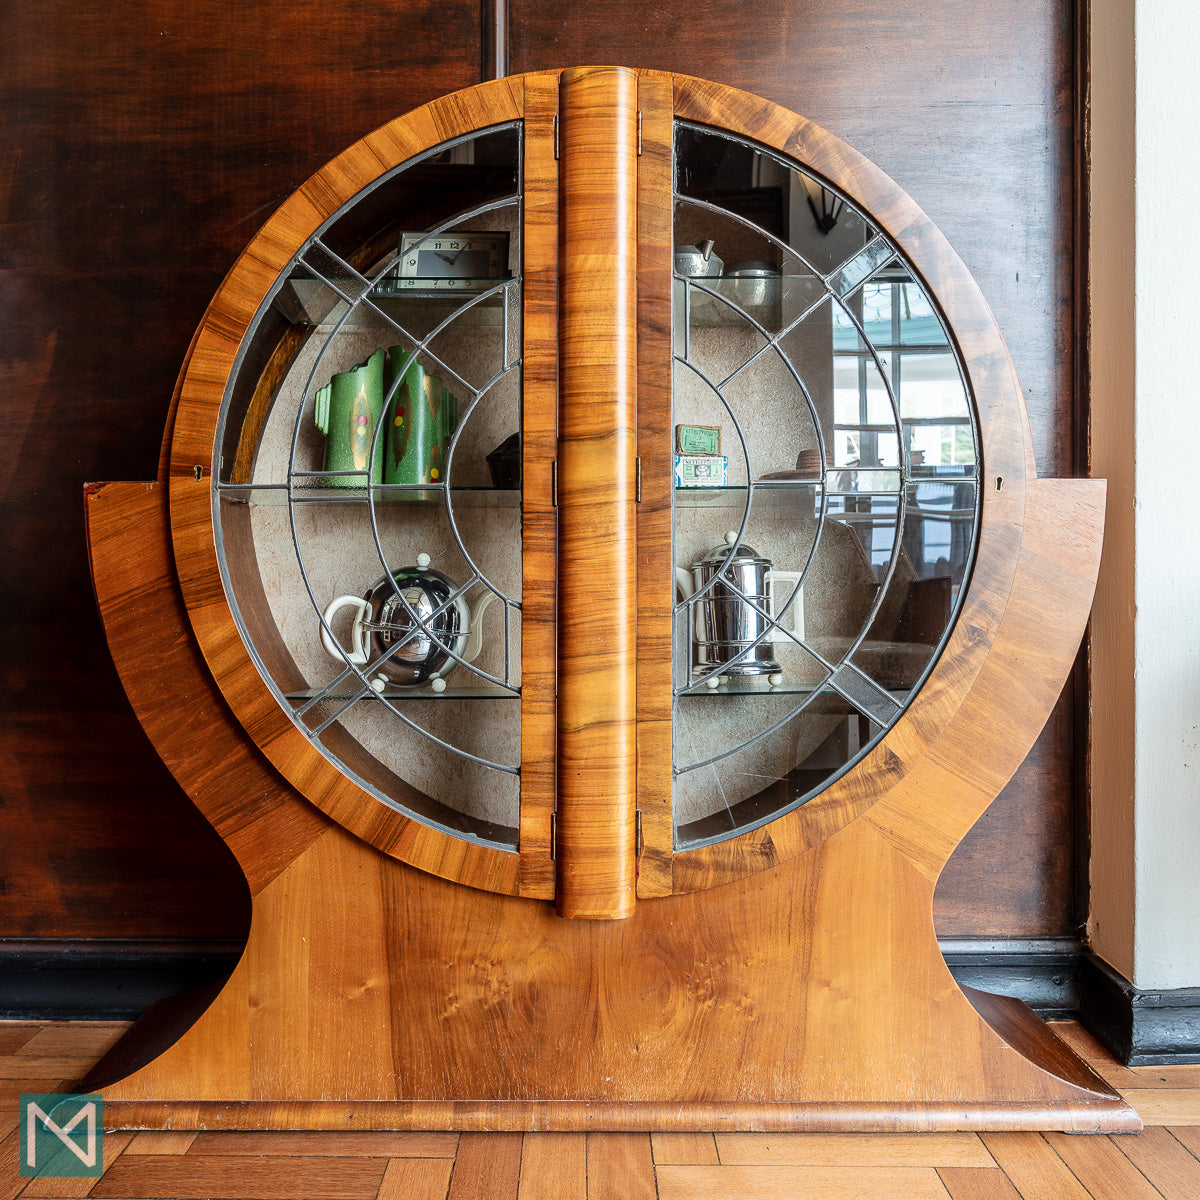 Art Deco Cabinet at the Burgh Island Hotel